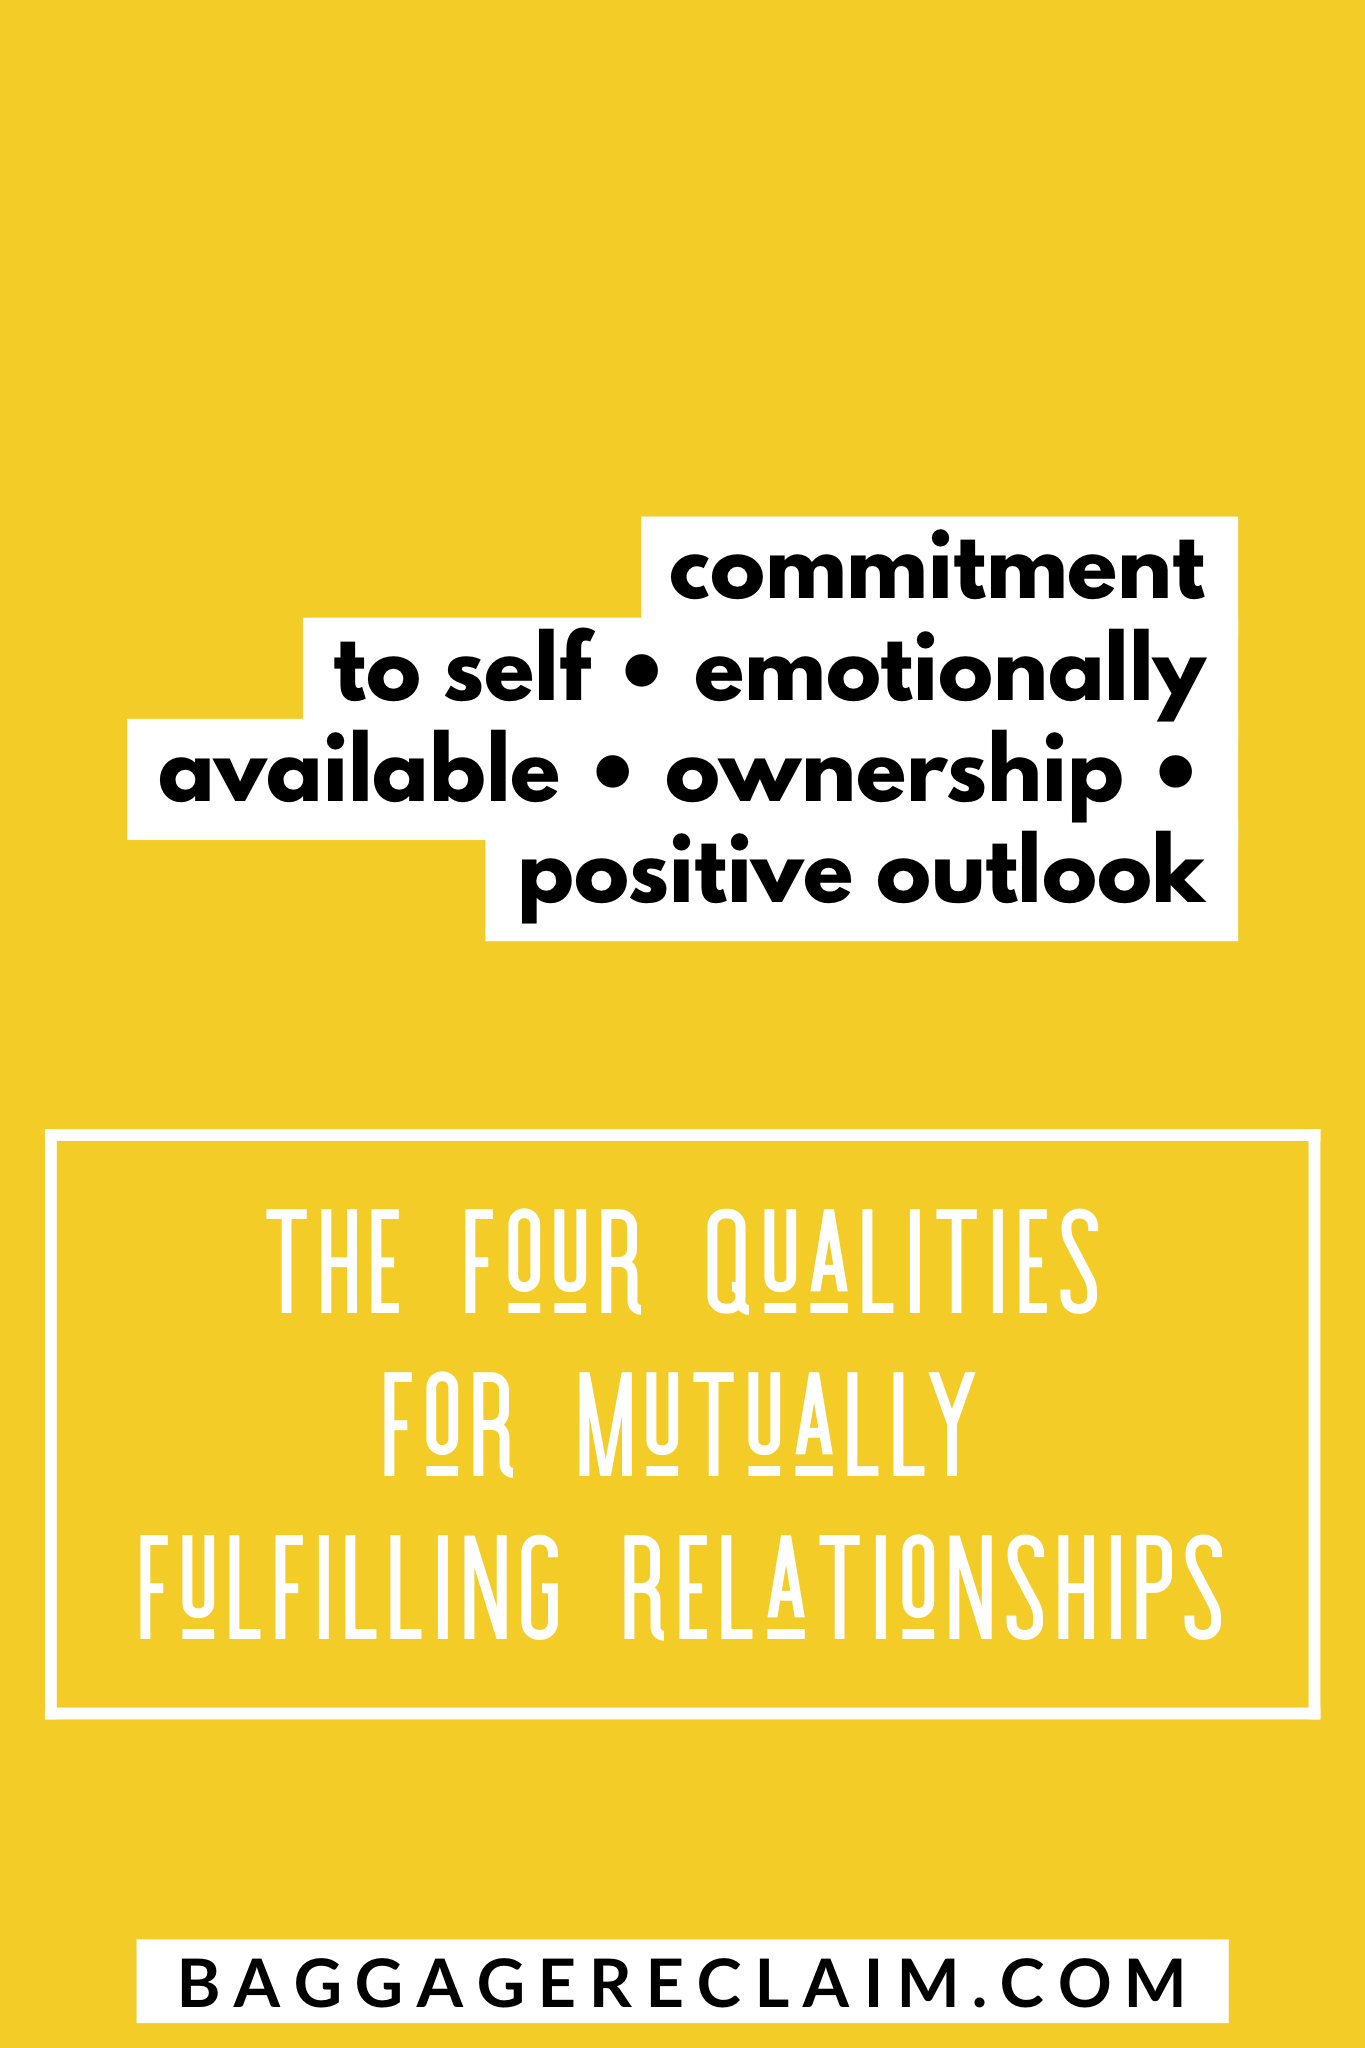 the four qualities for mutually fulfilling relationships. Natalie Lue. commitment to self. emotionally available. ownership. positive outlook